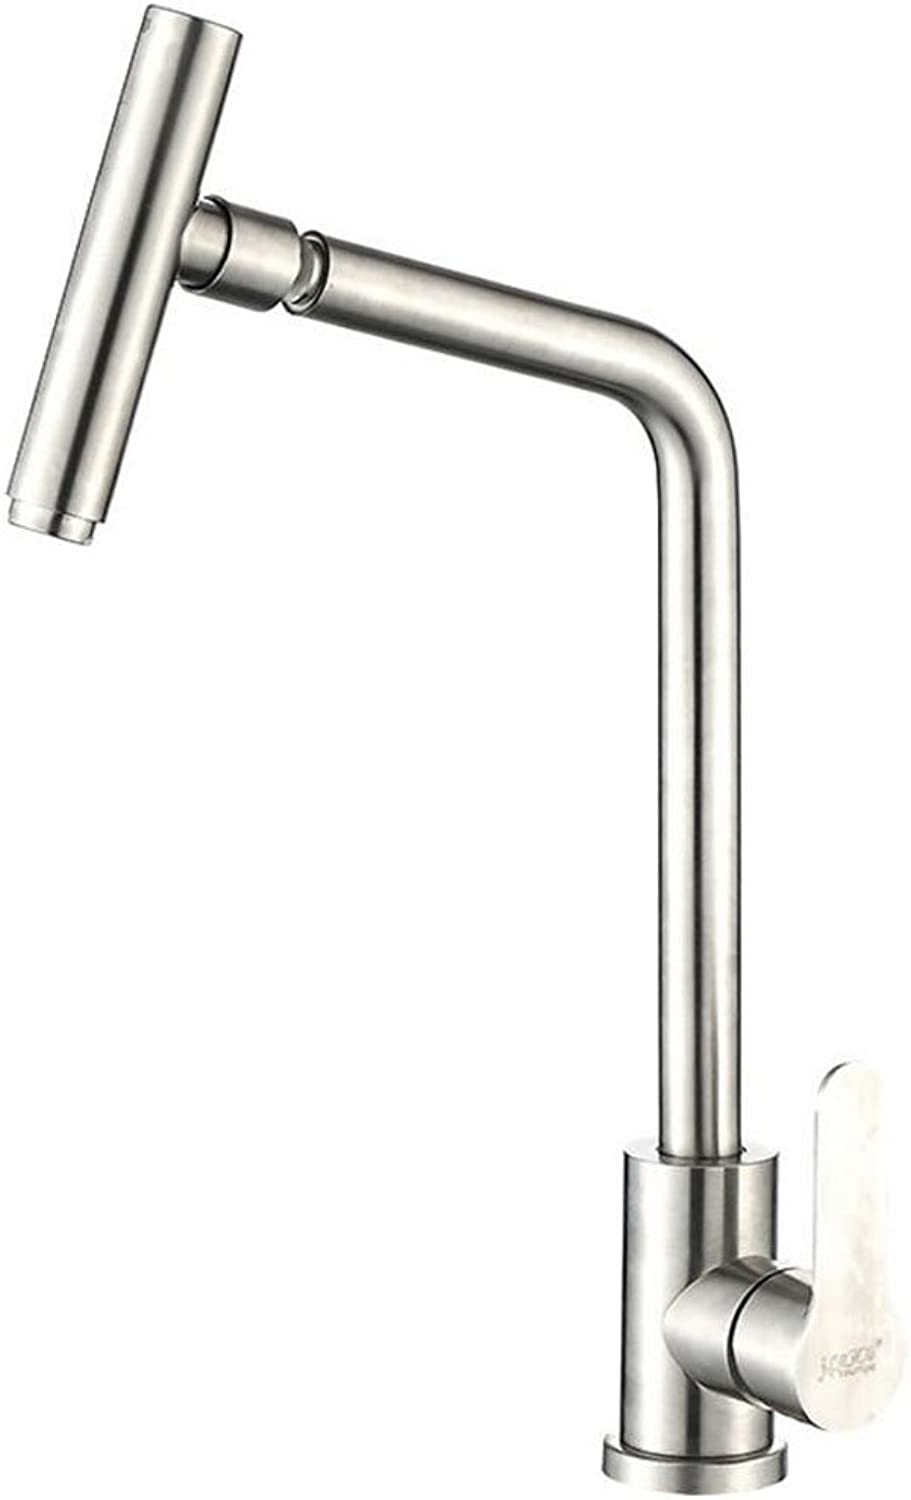 Modern Commercial 360 Degree Swivel Stainless Steel Brushed Nickel Kitchen Faucet, Single Handle Kitchen Sink Faucet with